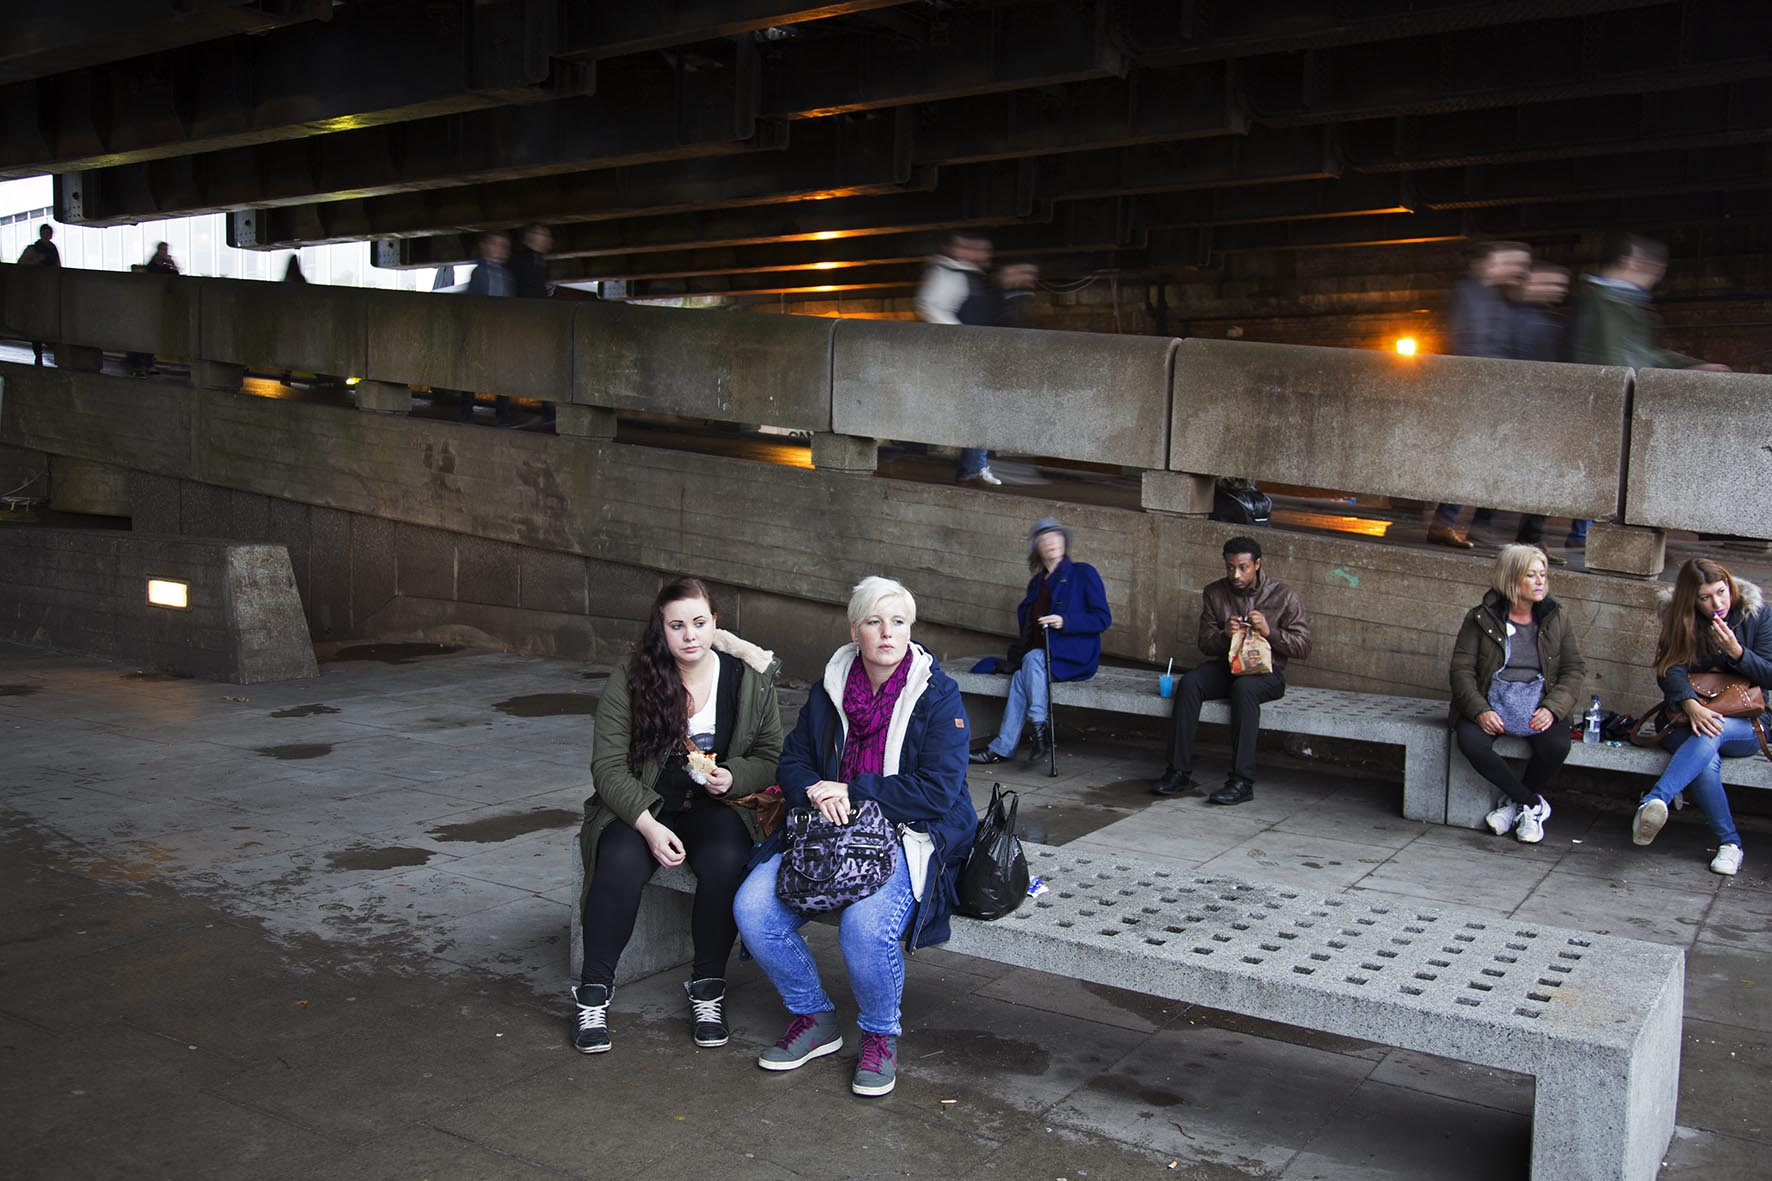 Sheltering from the rain underneath Hungerford Bridge.